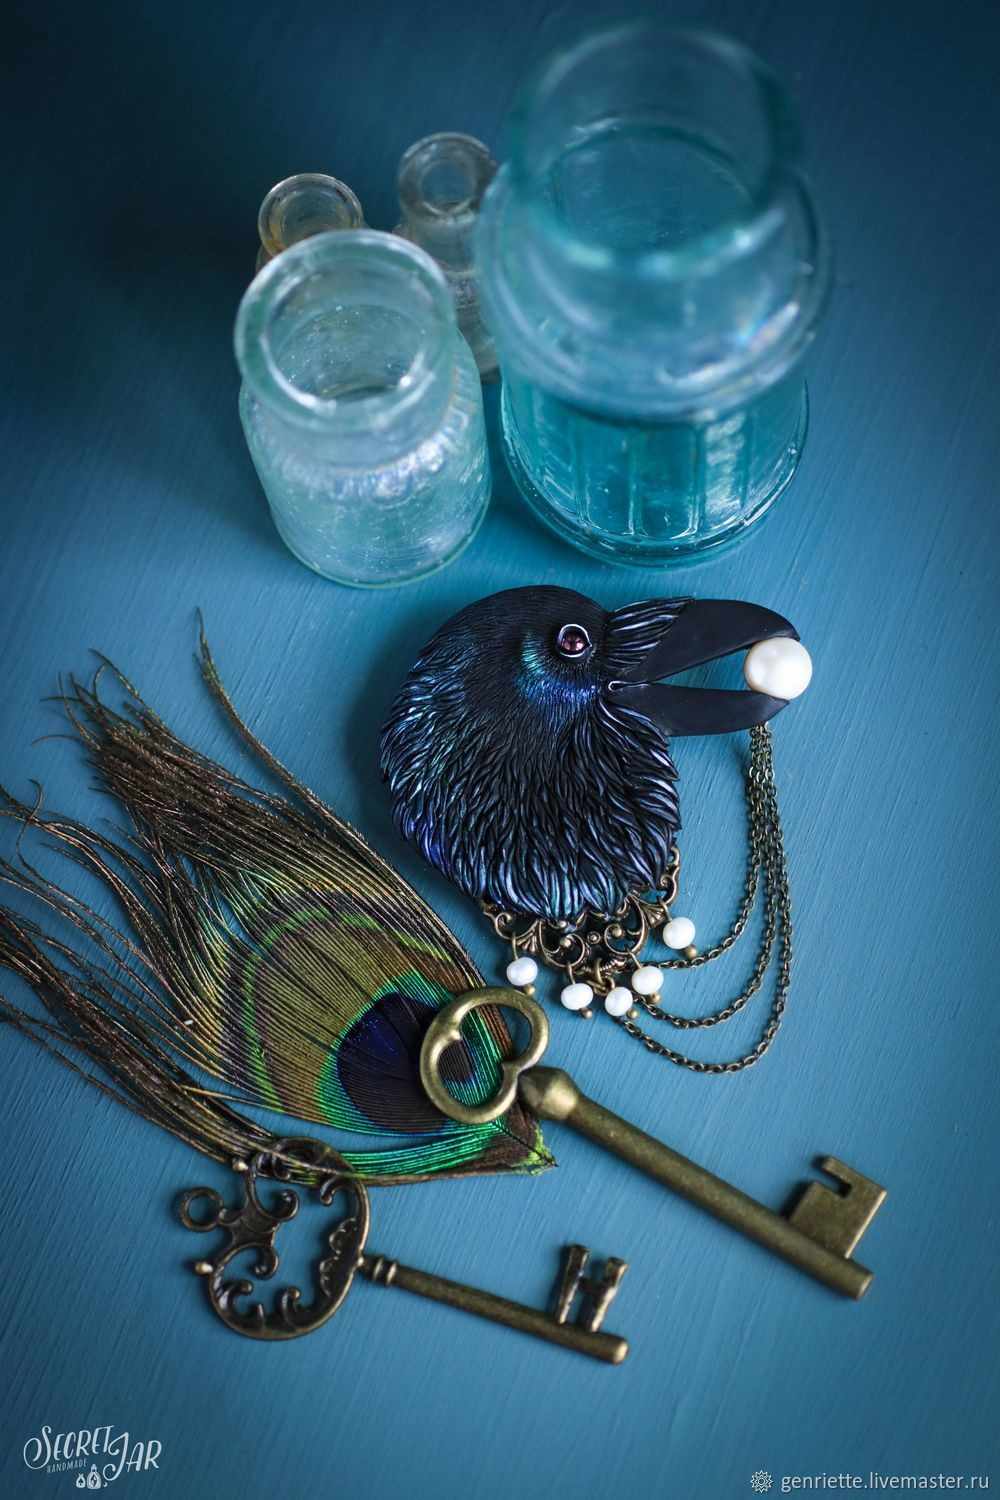 Brooch Quot The Raven Quot Shop Online On Livemaster With